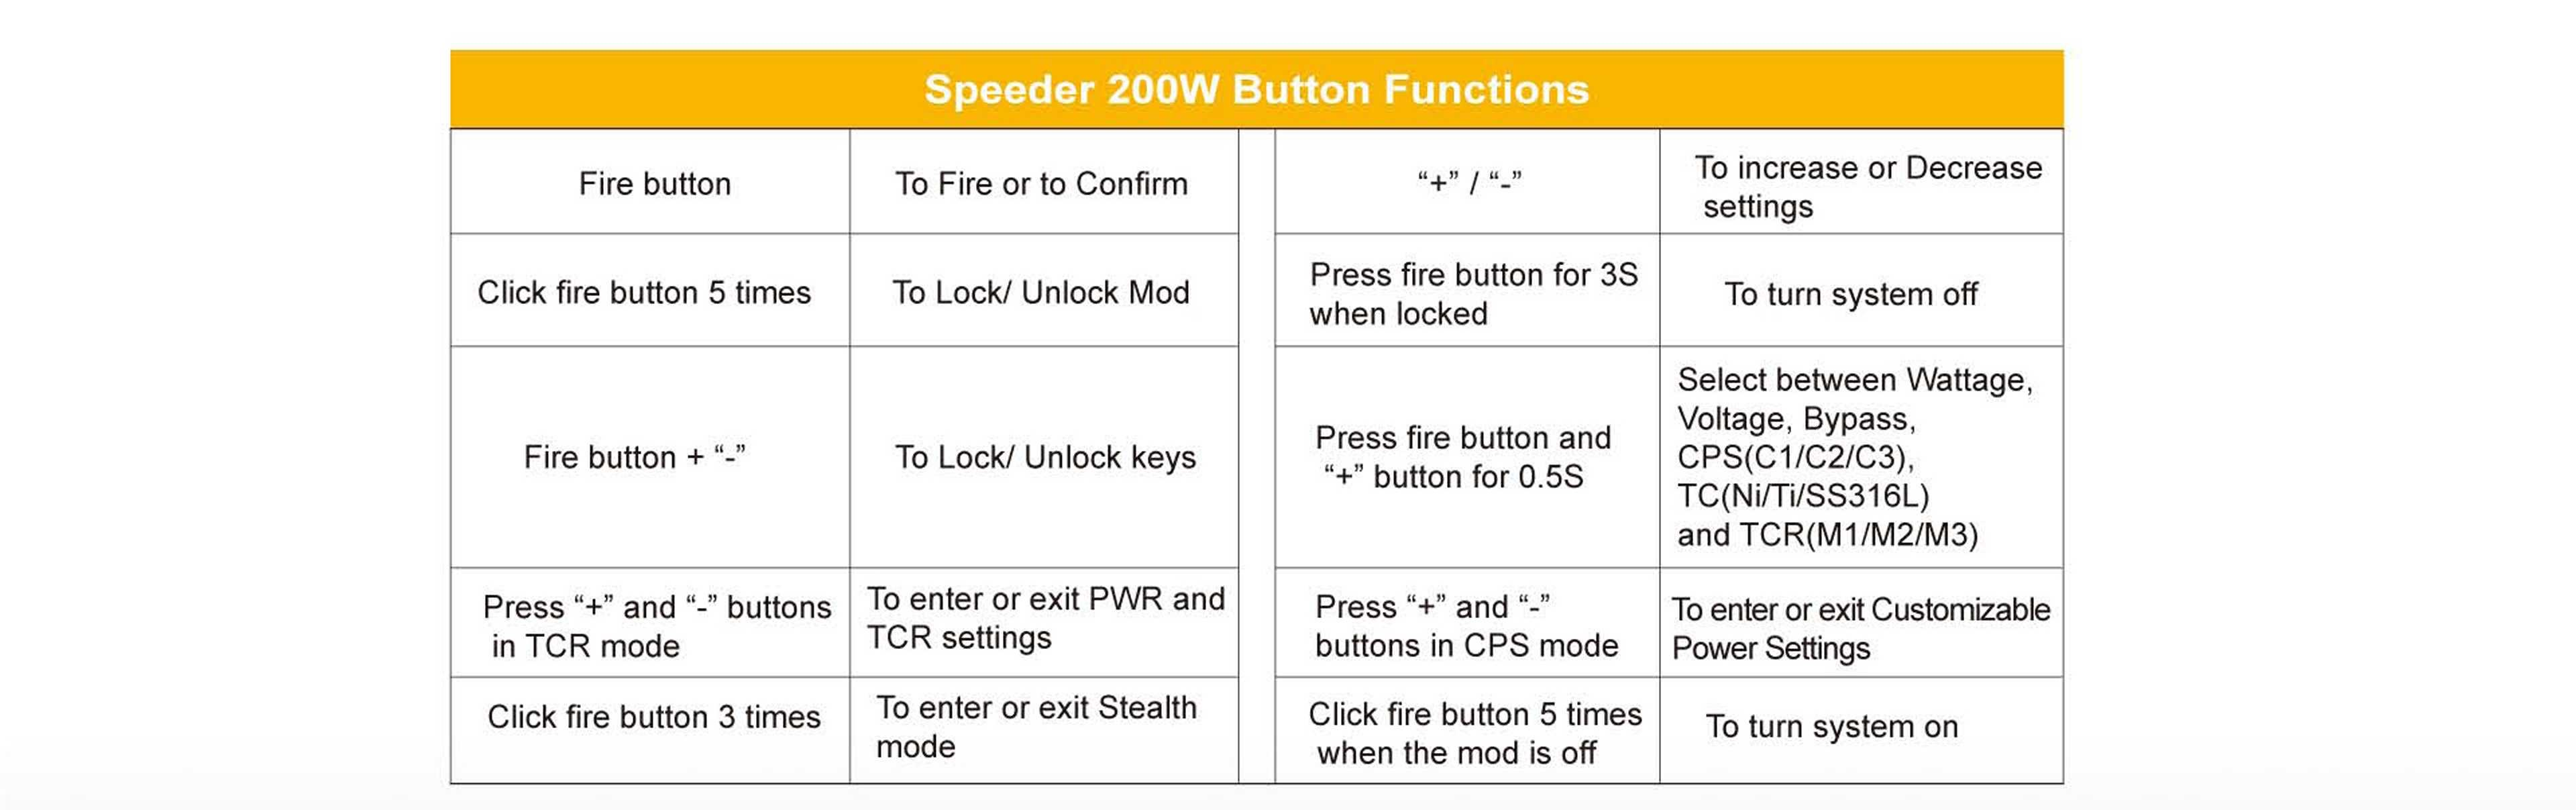 Aspire Speeder Mod Button Functions